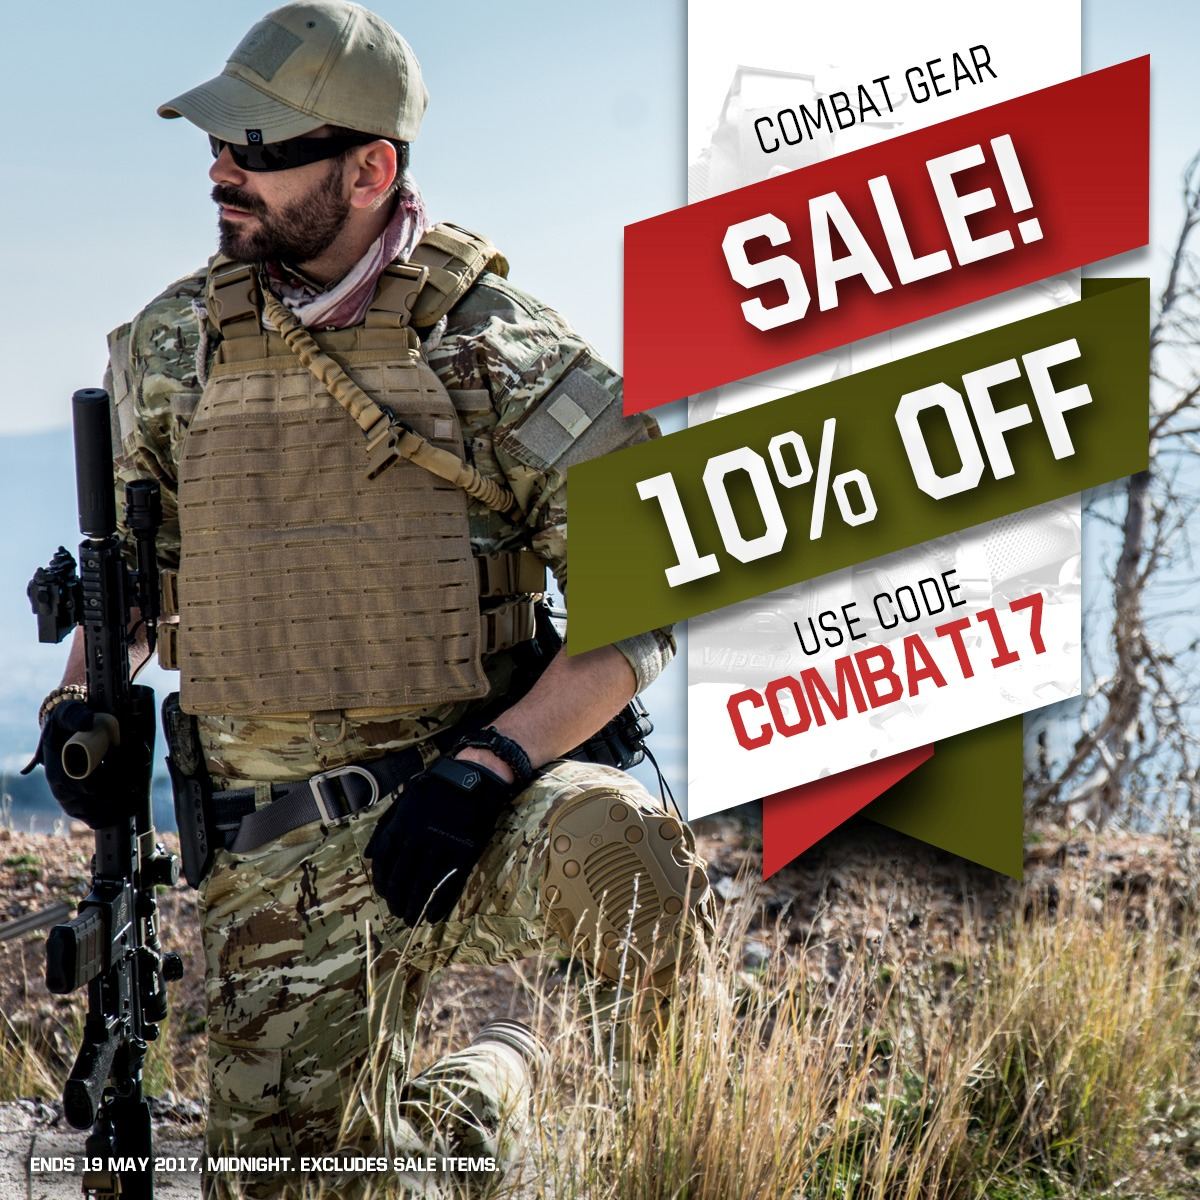 Combat Gear Sale 2017 Instagram